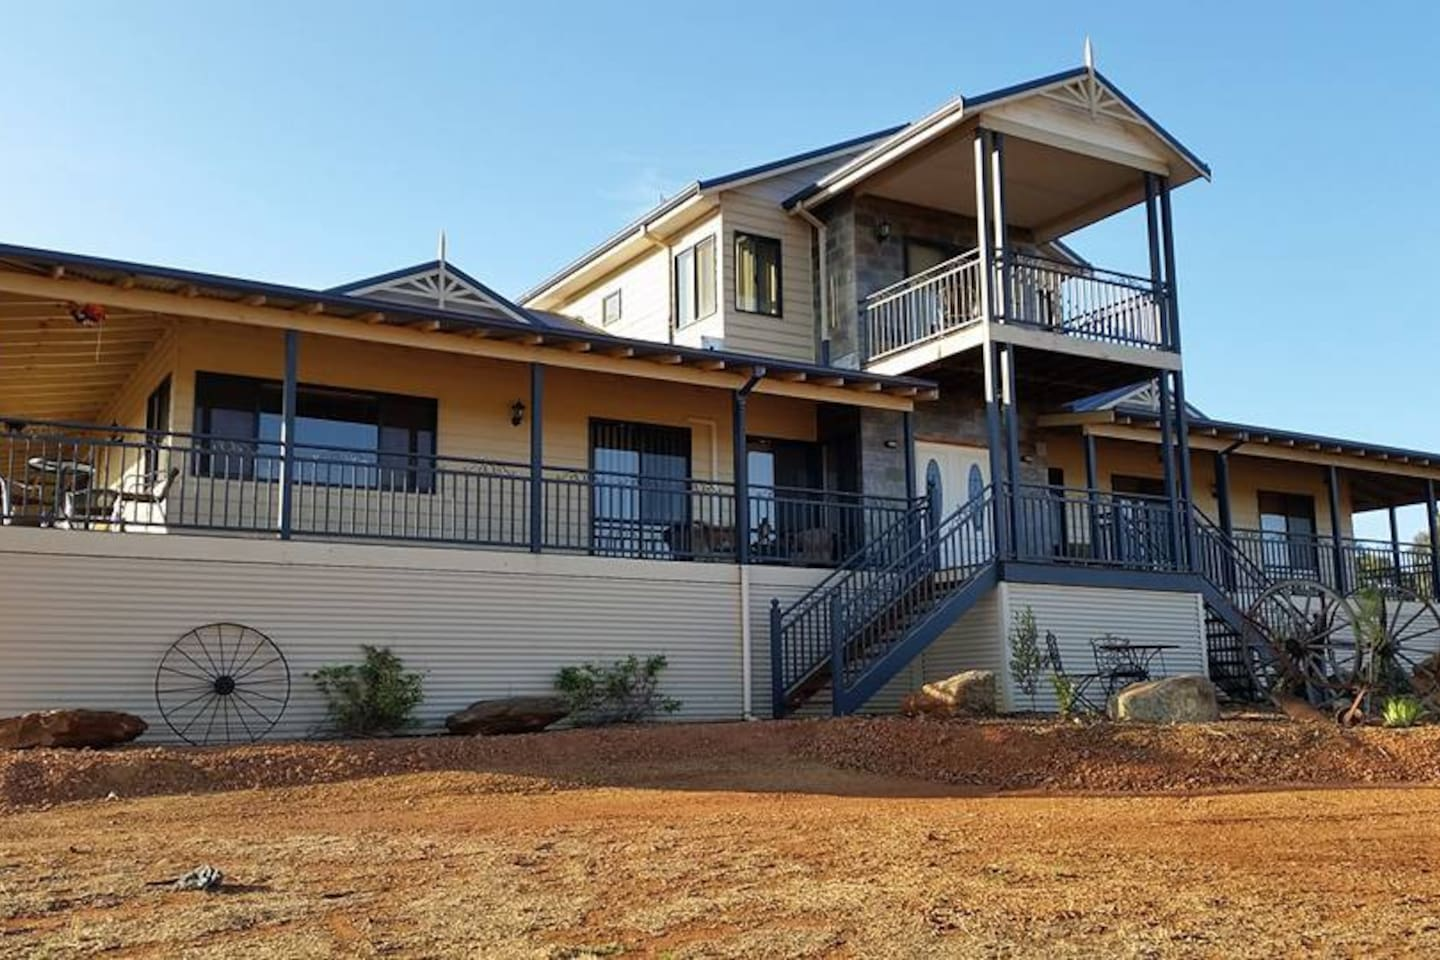 Gorgeous Queenslander style house with rustic gardens